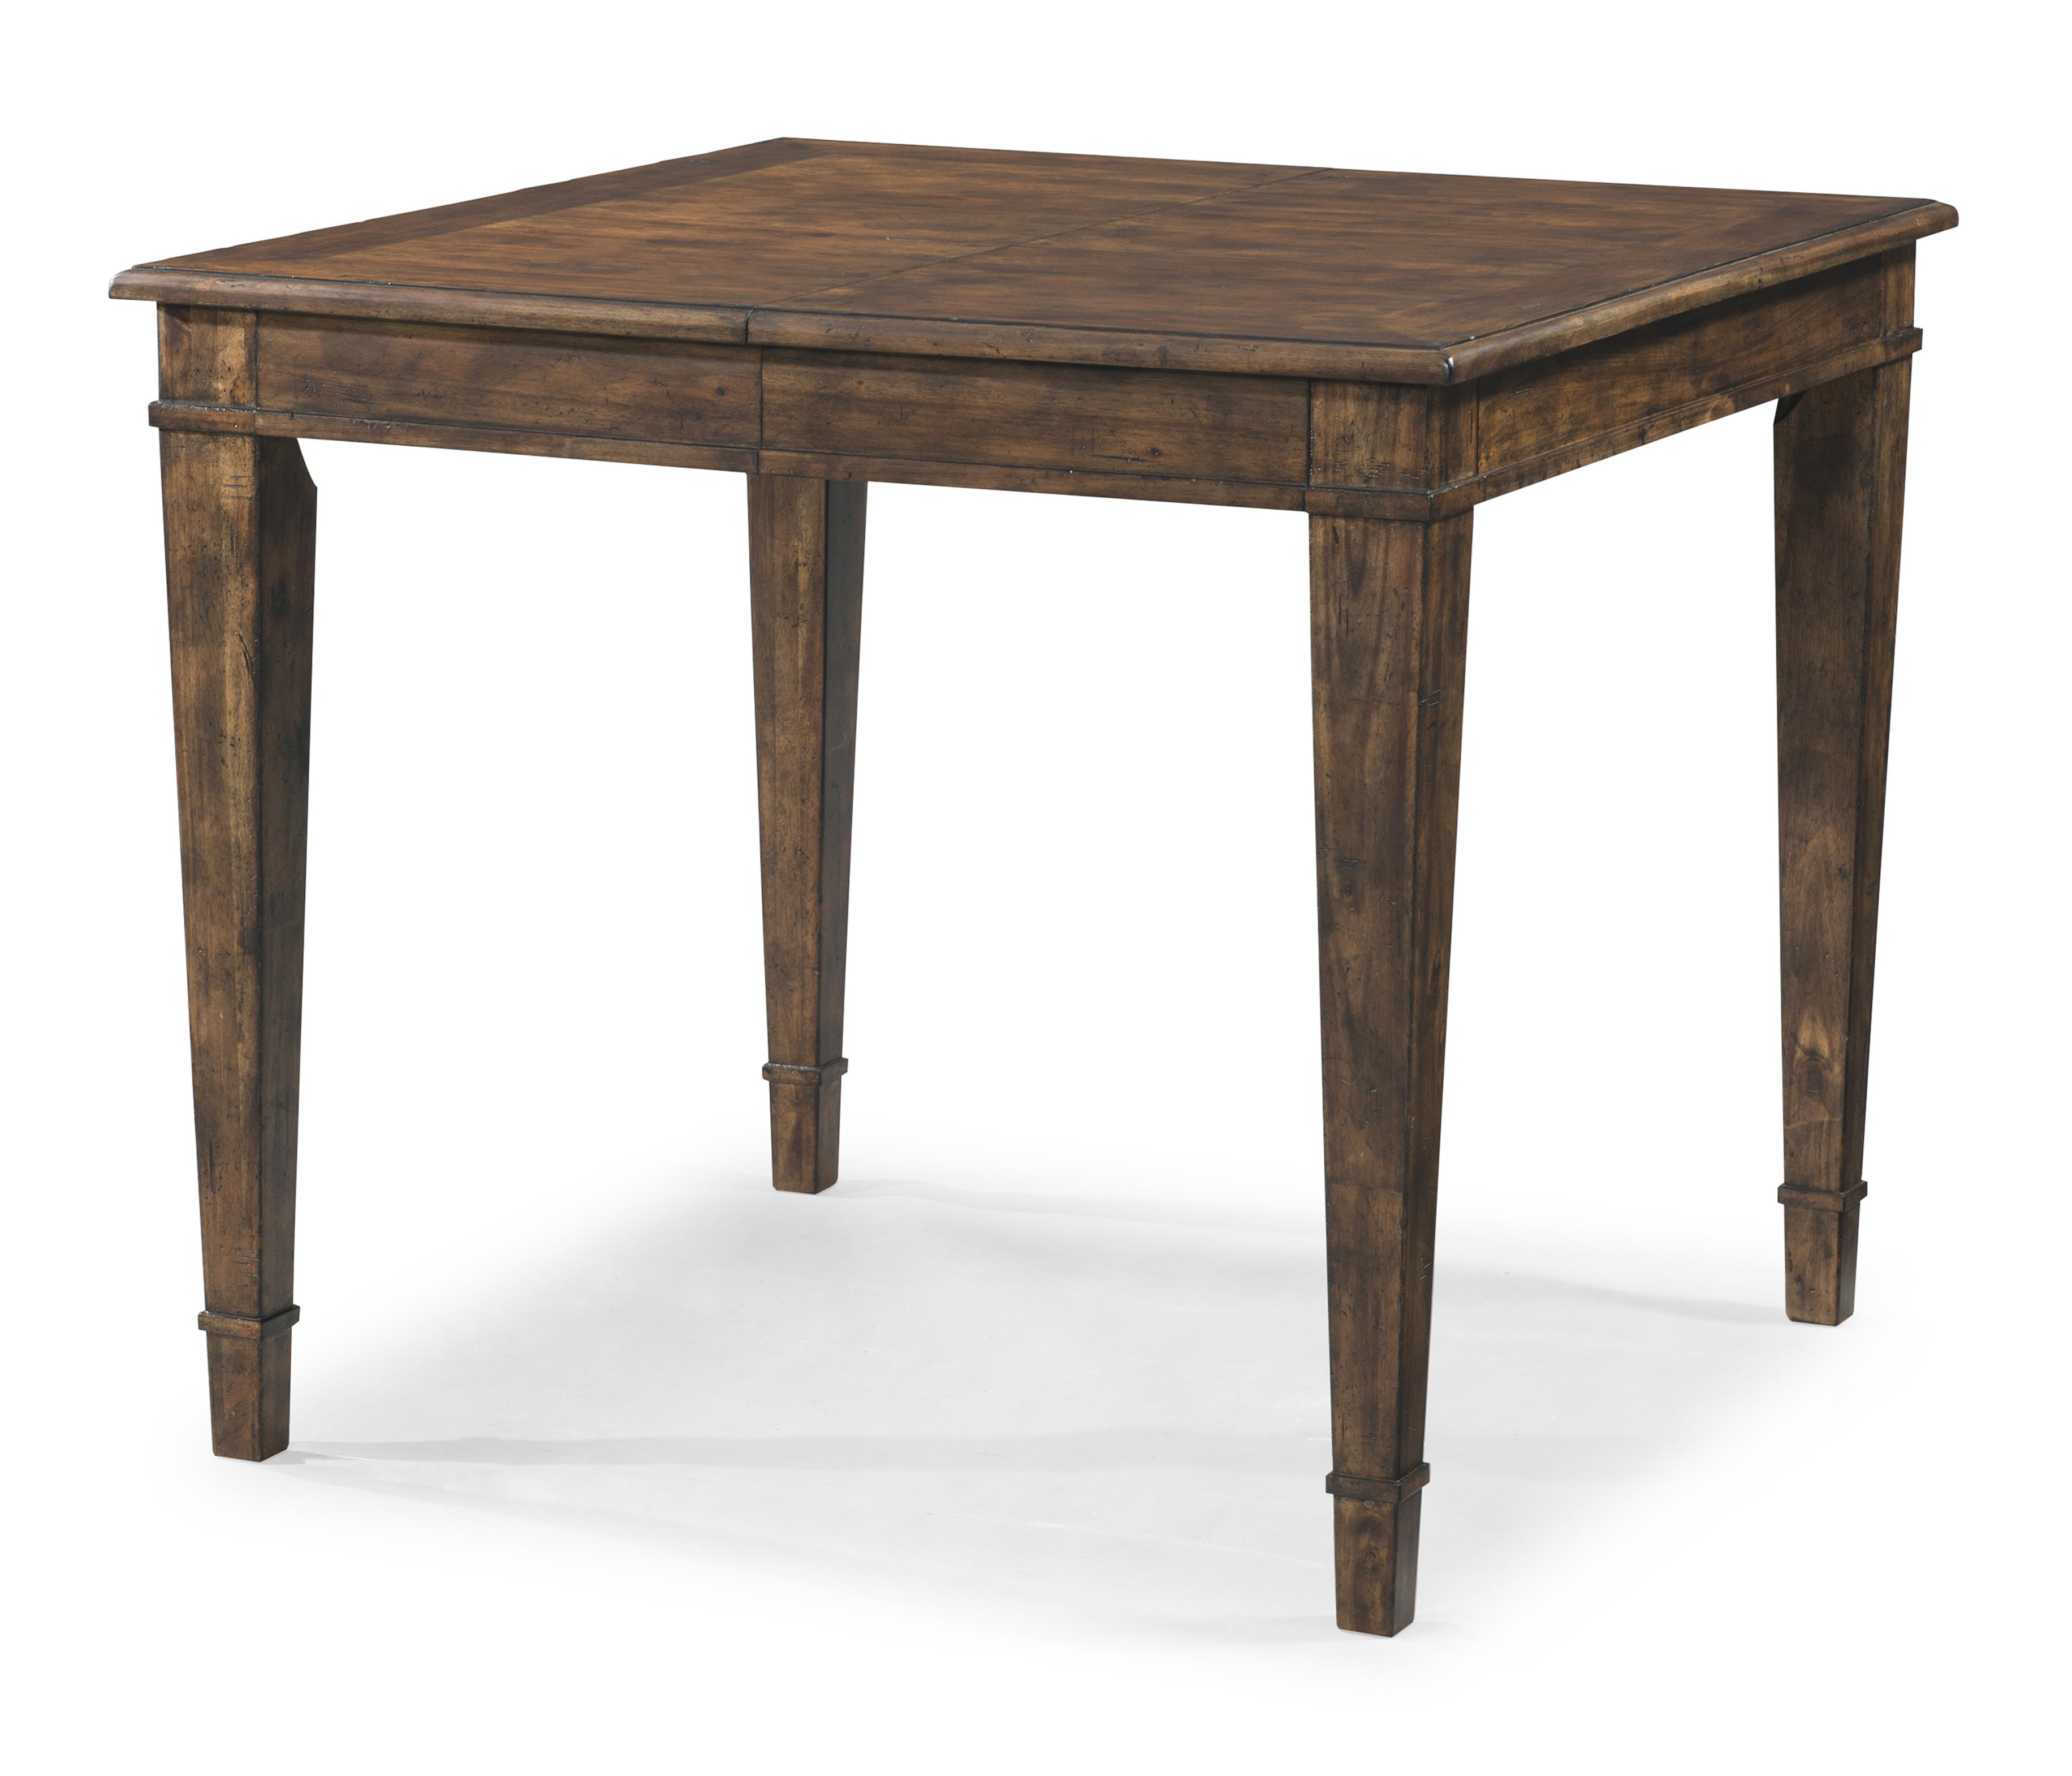 Southern Kitchen Counter Height Table With 18 Inch Leaf By